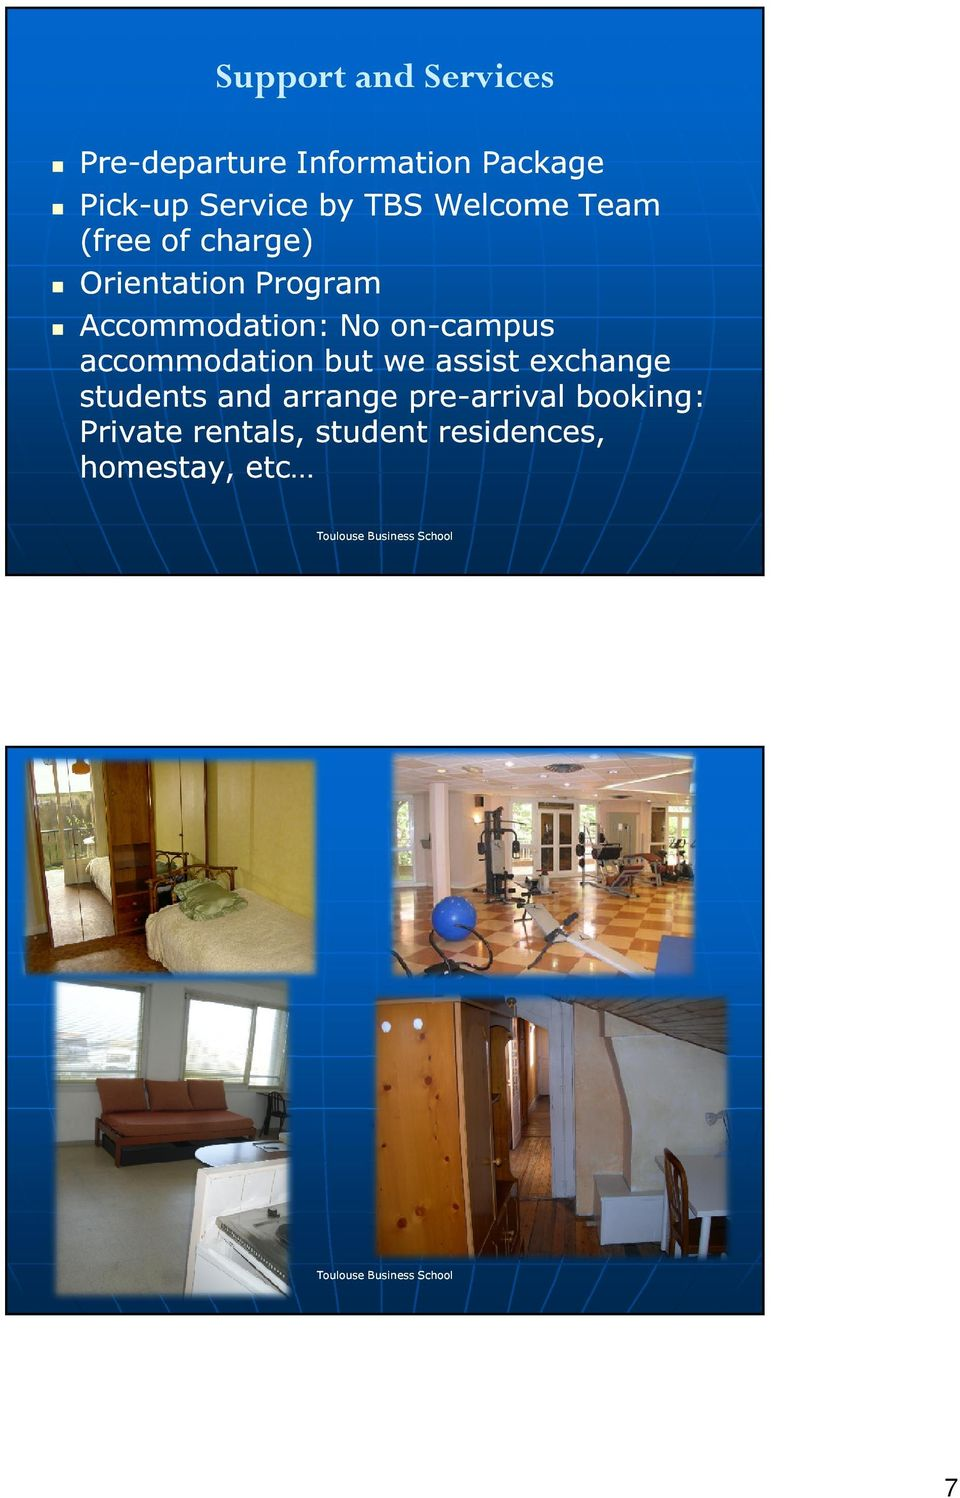 Accommodation: No onon-campus accommodation but we assist exchange students